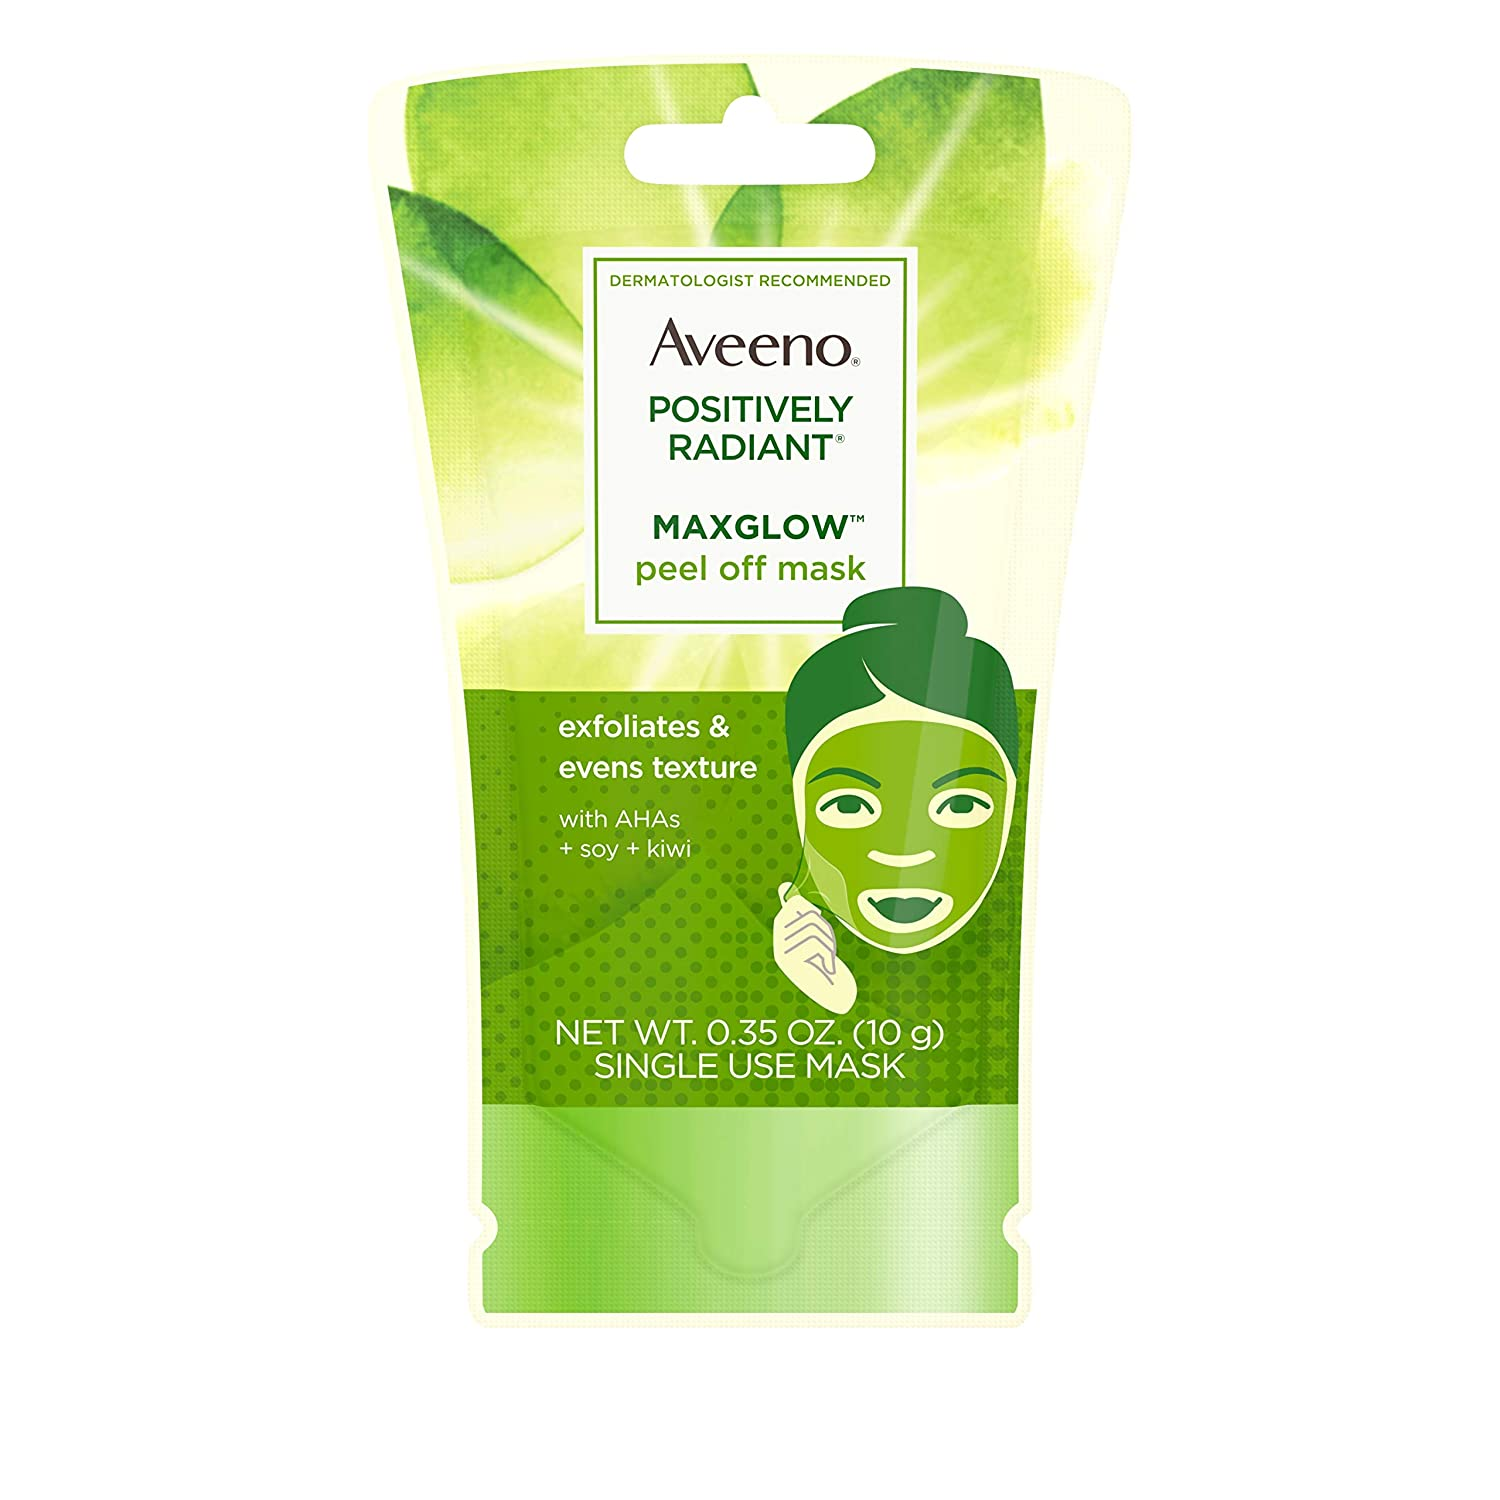 Aveeno Positively Radiant MaxGlow Peel Off Exfoliating Face Mask with Alpha Hydroxy Acids, Soy & Kiwi Complex for Even Tone & Texture, Non-Comedogenic, Paraben- & Phthalate-Free, 0.35 oz (Pack of 4)